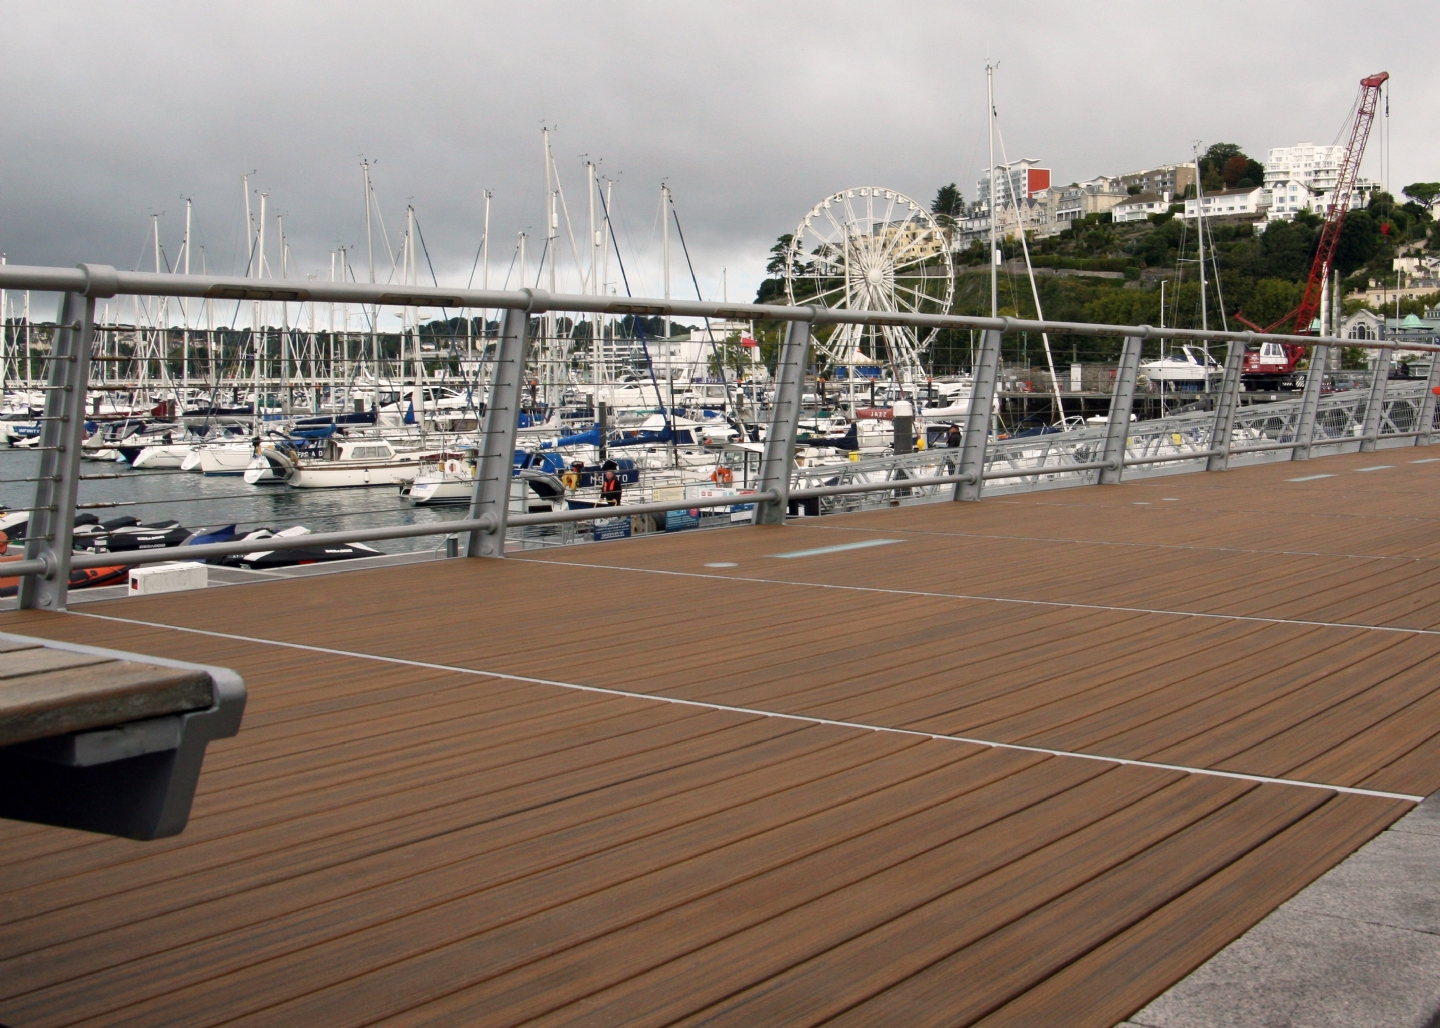 Trex composite decking at Torquay Beacon Quay